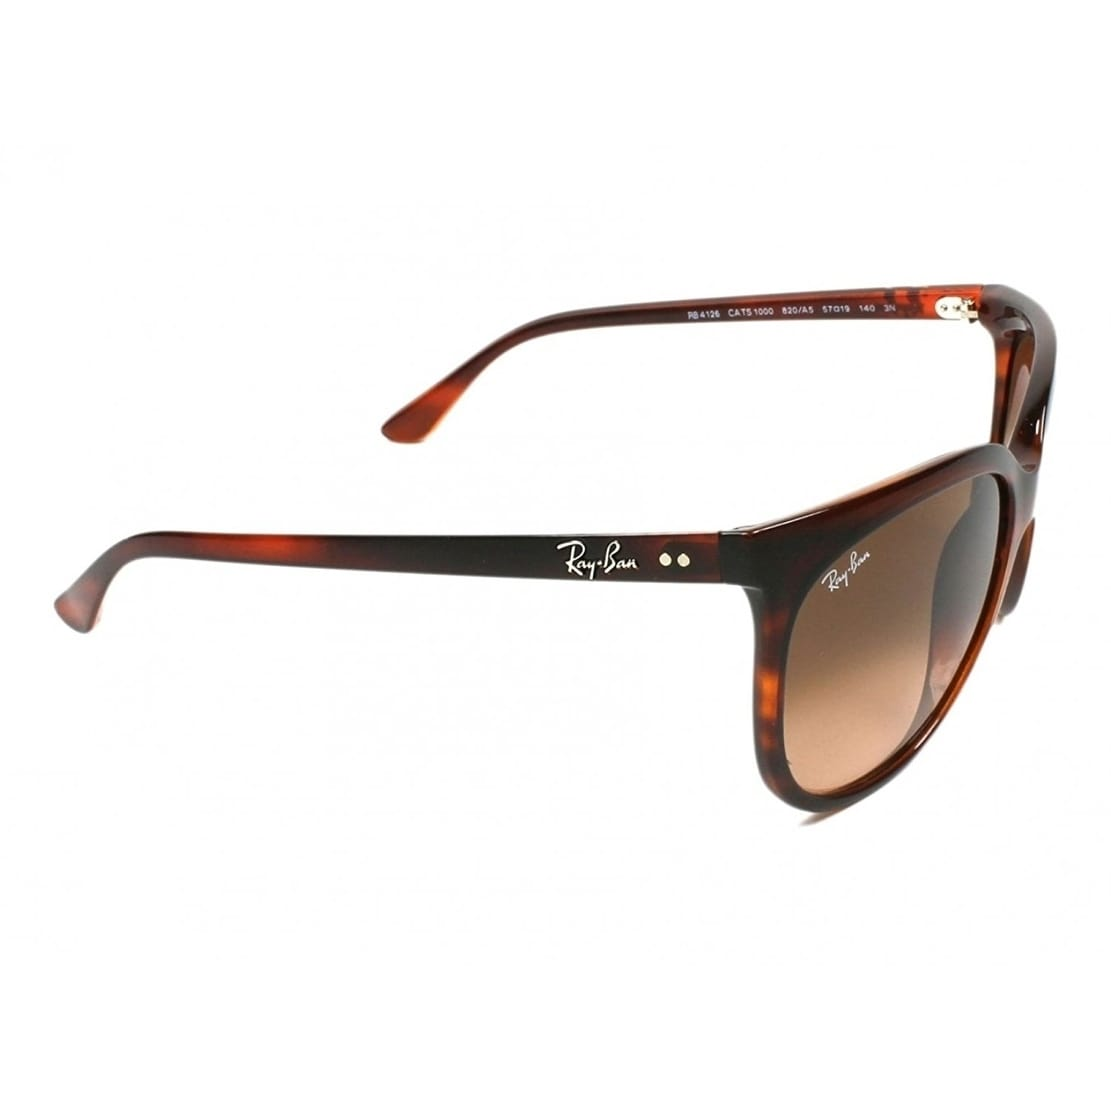 d70157846074b8 Shop Ray-Ban Women s RB4126 Cats 1000 Tortoise Frame Pink Brown Gradient  57mm Lens Sunglasses - Ships To Canada - Overstock - 17754307